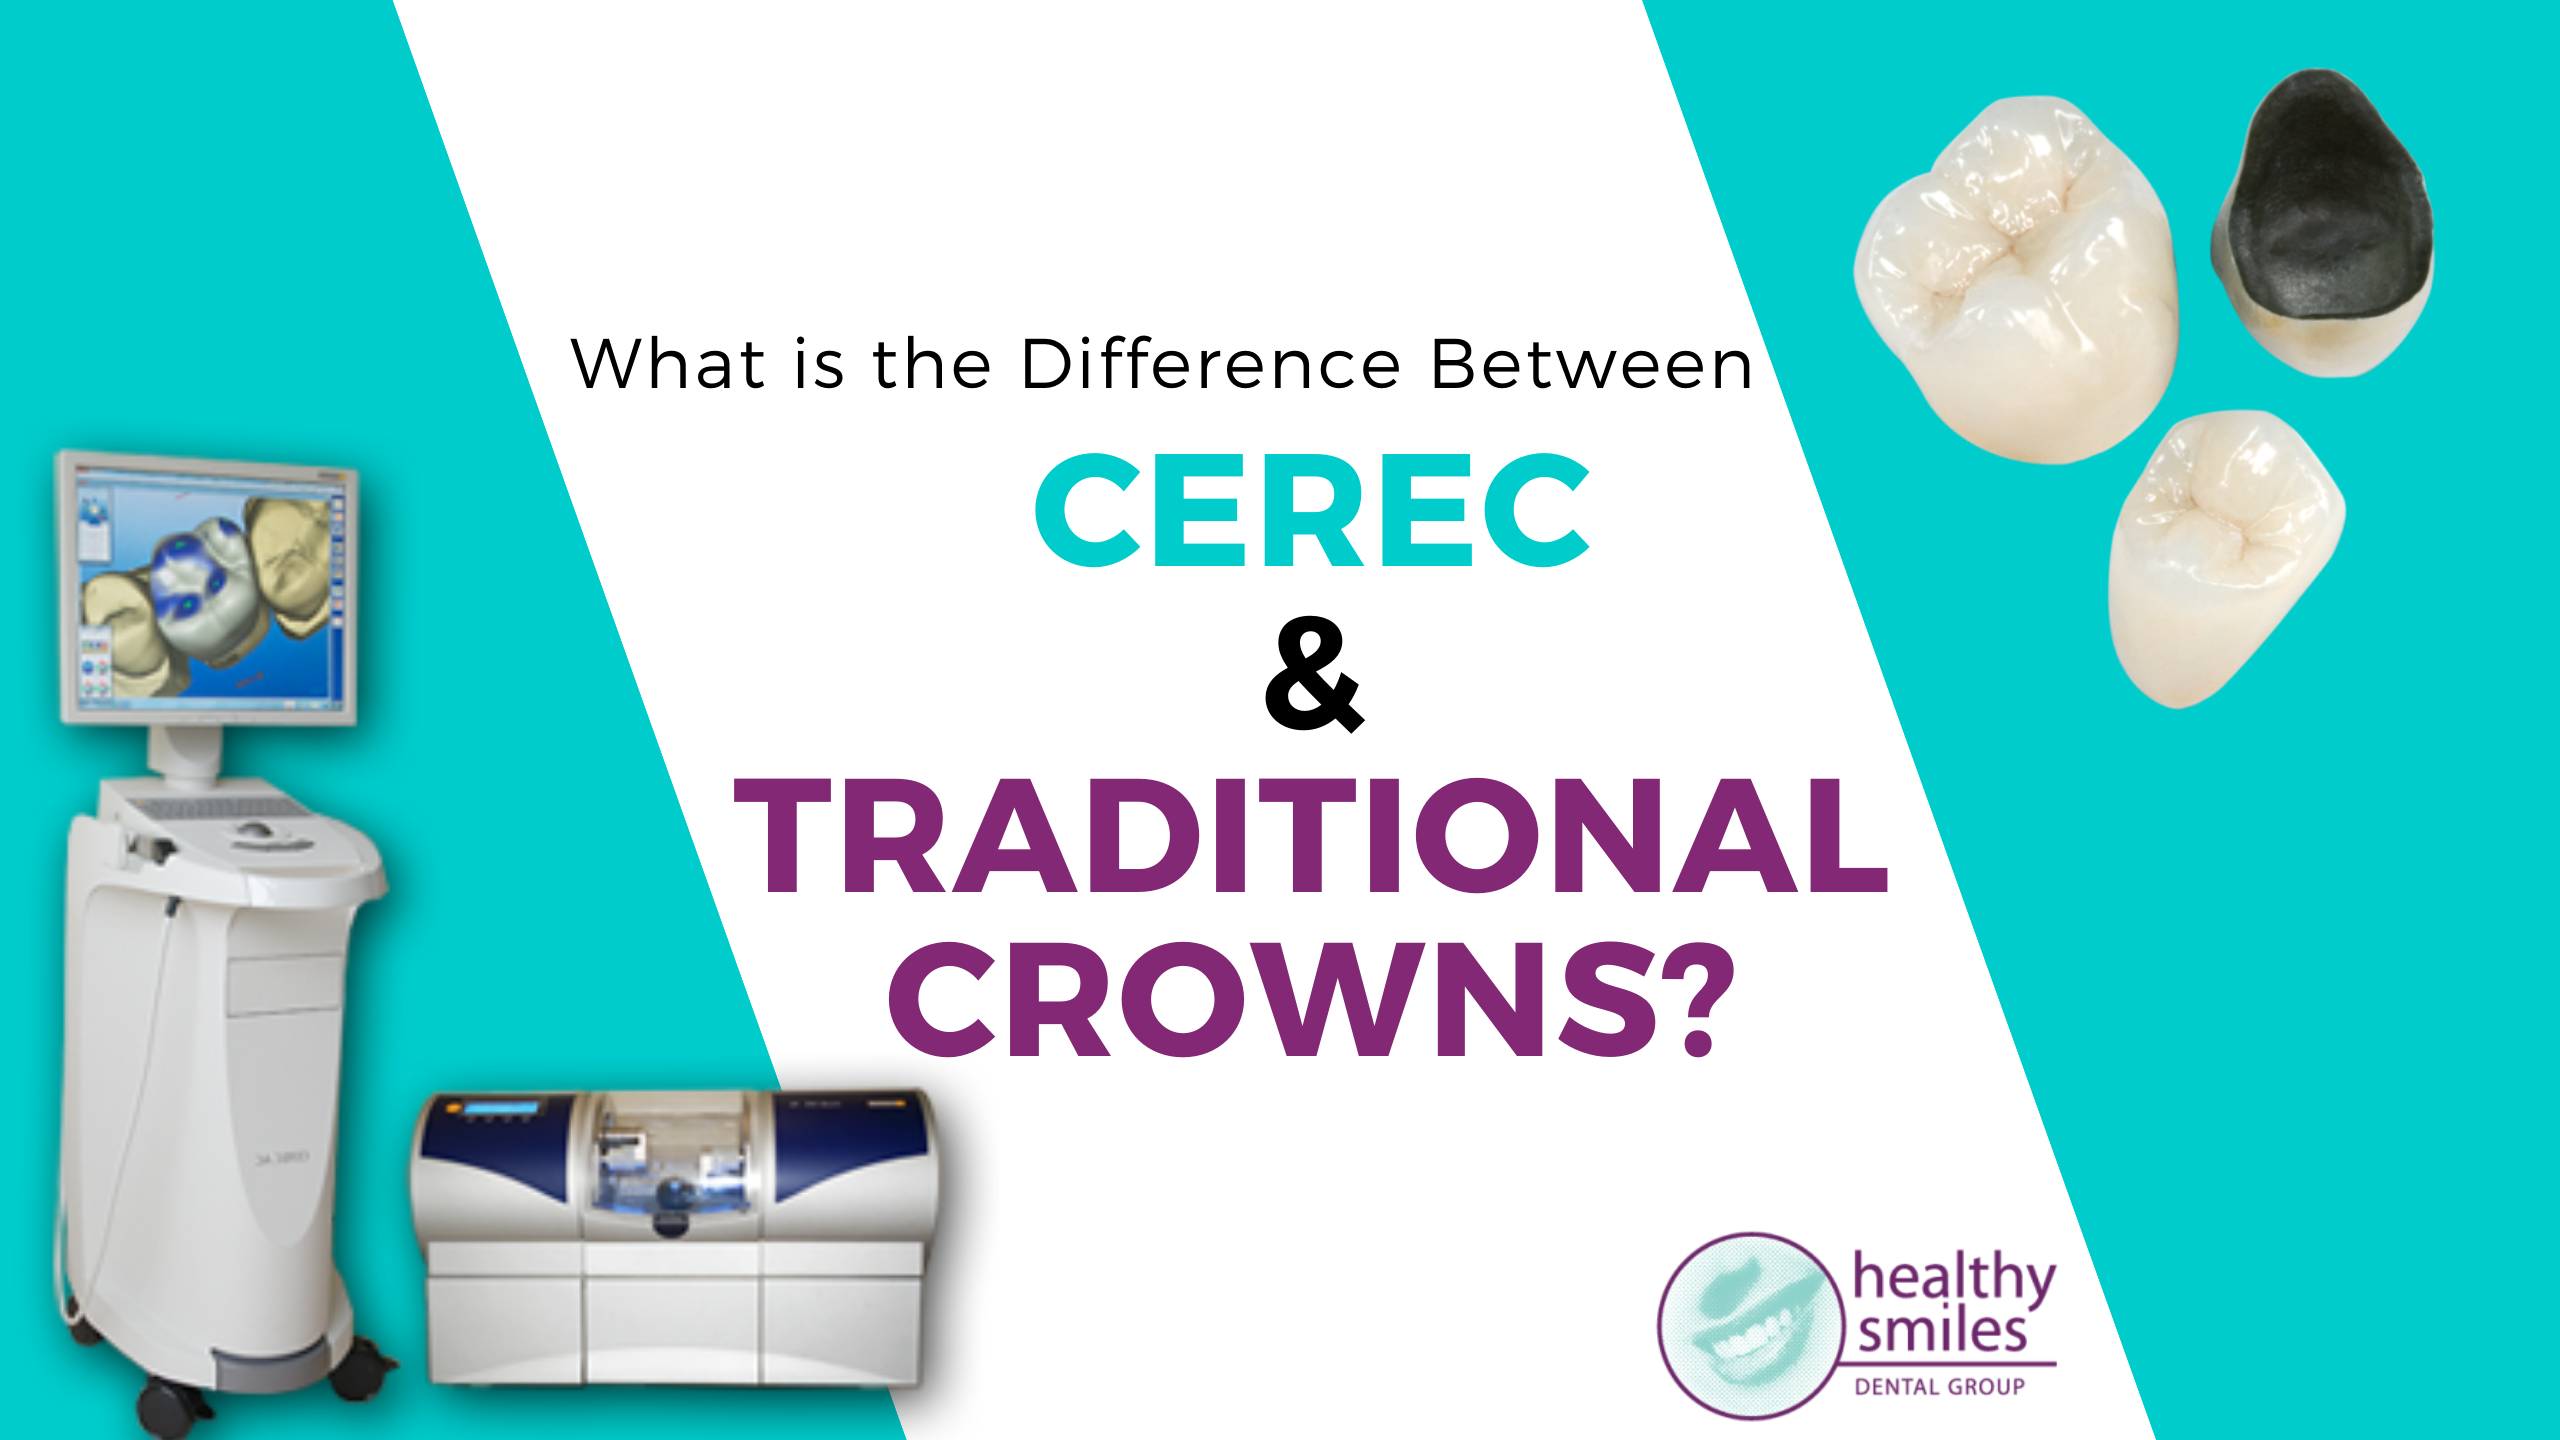 CEREC and Traditional Dental Crowns